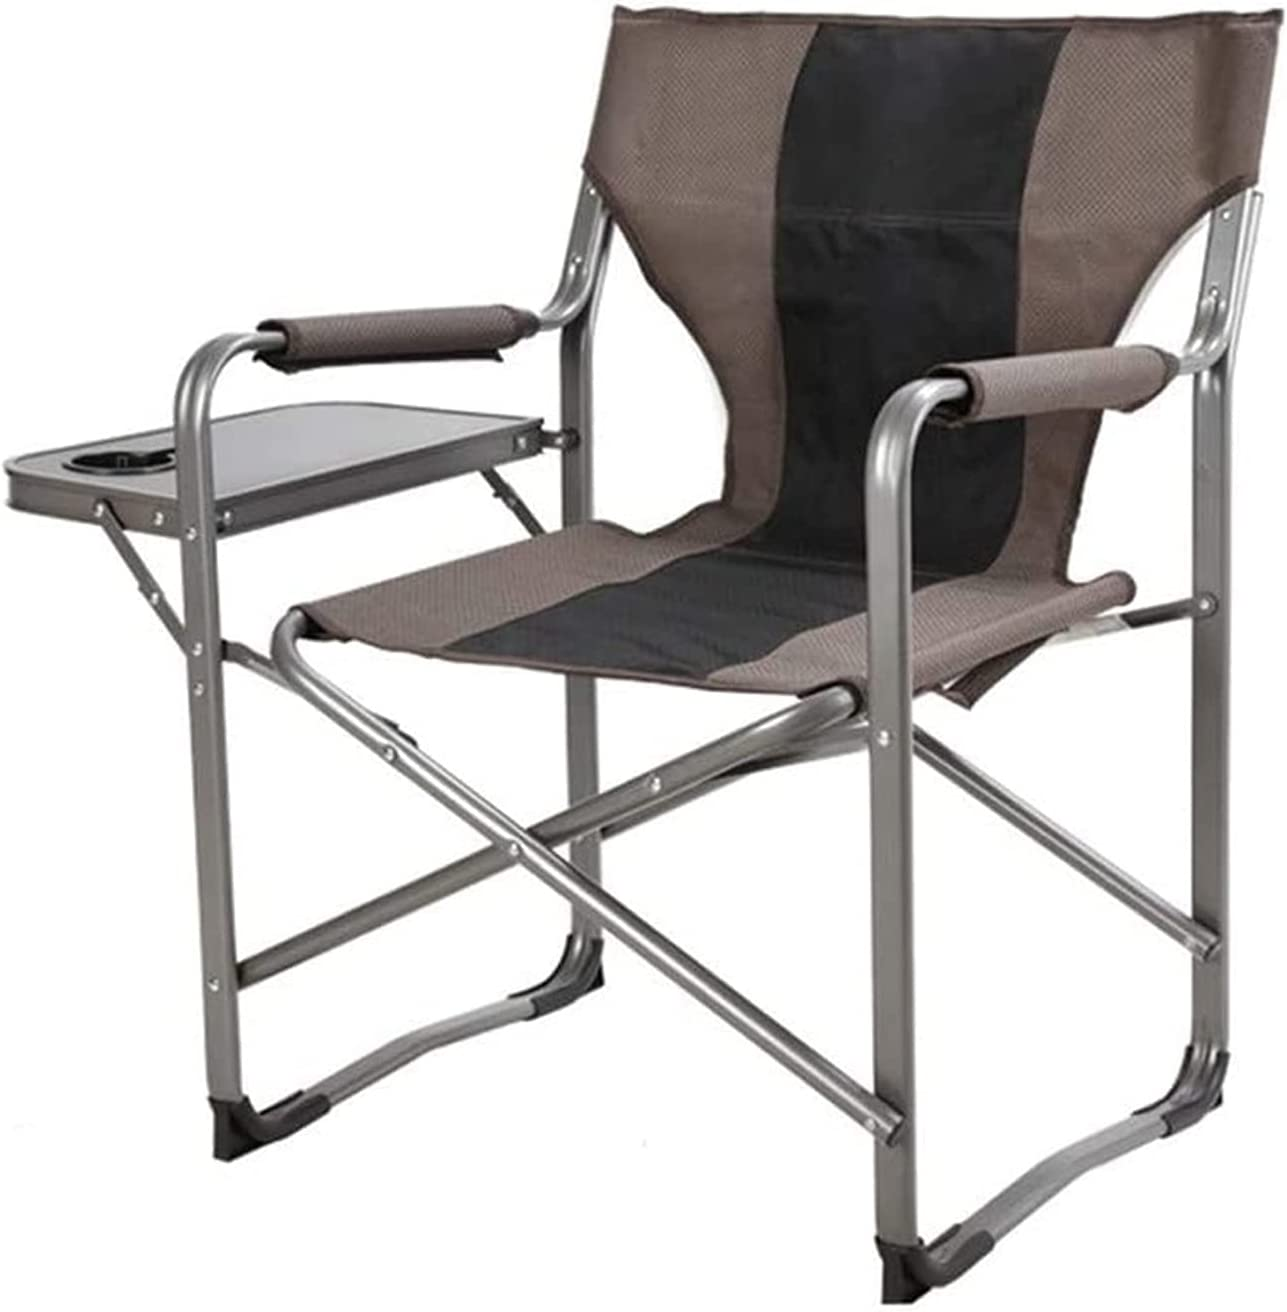 Limited time sale Tolalo Fishing Chair Camping with Fold Cheap mail order shopping Side Table Portable